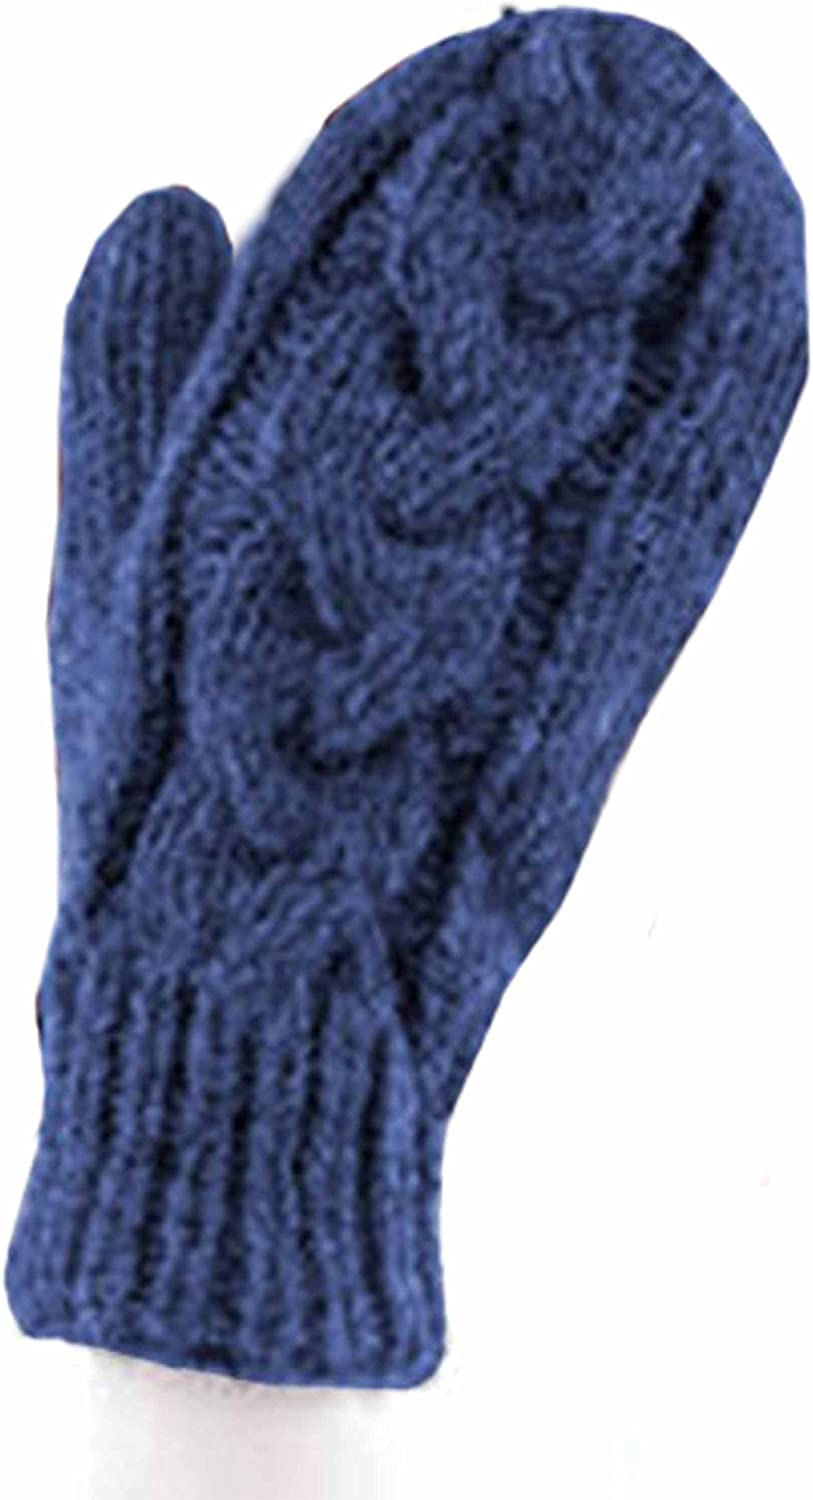 Braided Cable Knit WOOL MITTENS (Blue)